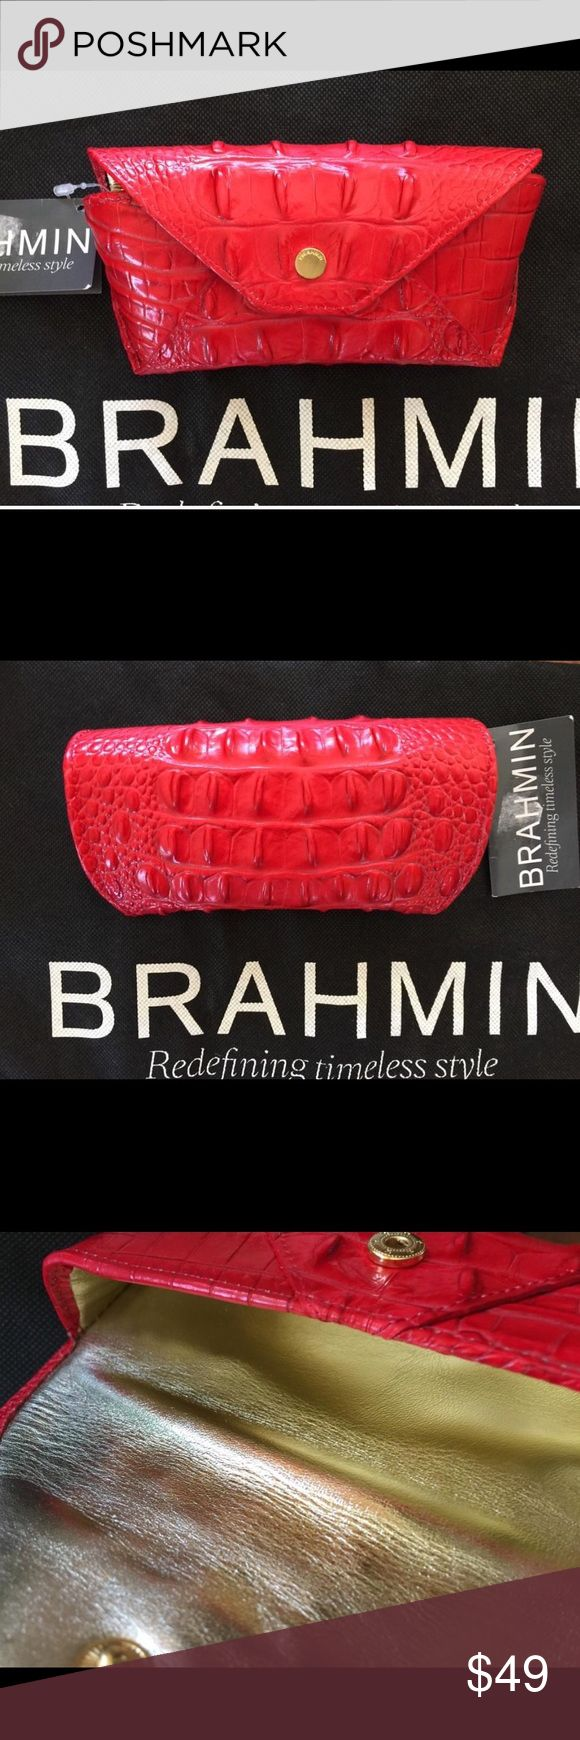 Dragon fruit comes in three colors white pink and red or magenta white -  Brahmin Red Croc Melbourne Eyeglass Case Nwt Beautiful Red Dragon Fruit Croc Melbourne